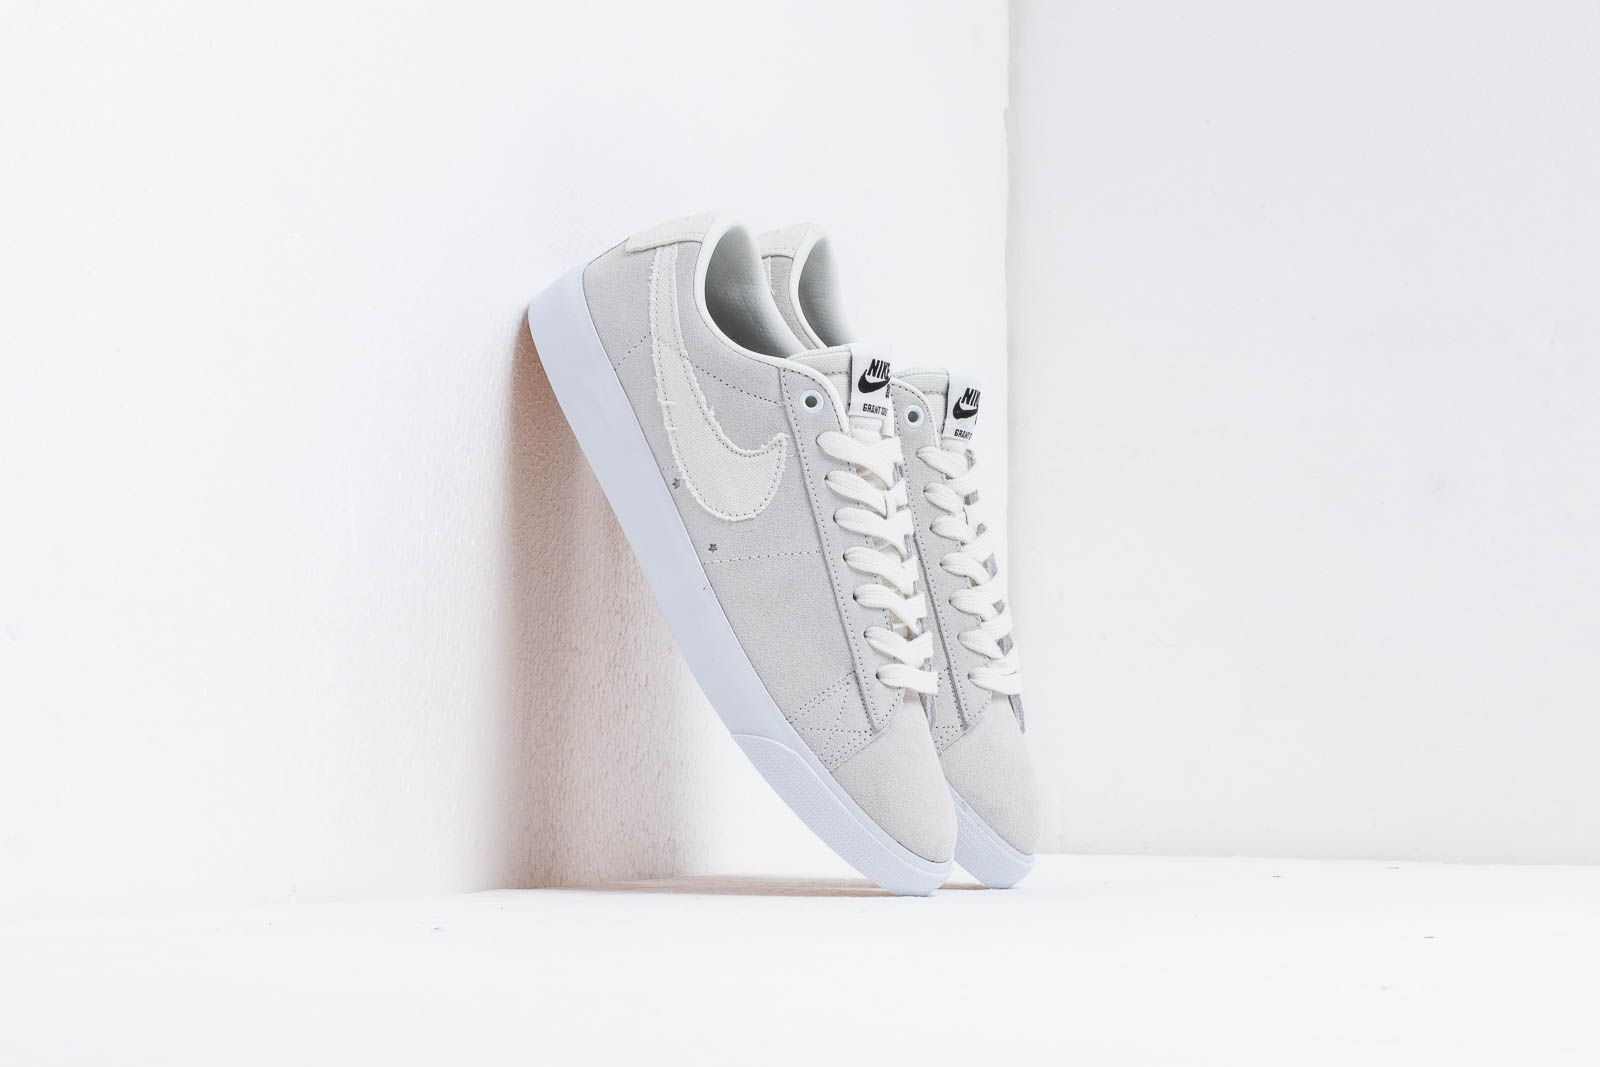 Men's shoes Nike Sb Zoom Blazer Low Gt Summit White/ Summit White-Obsidian